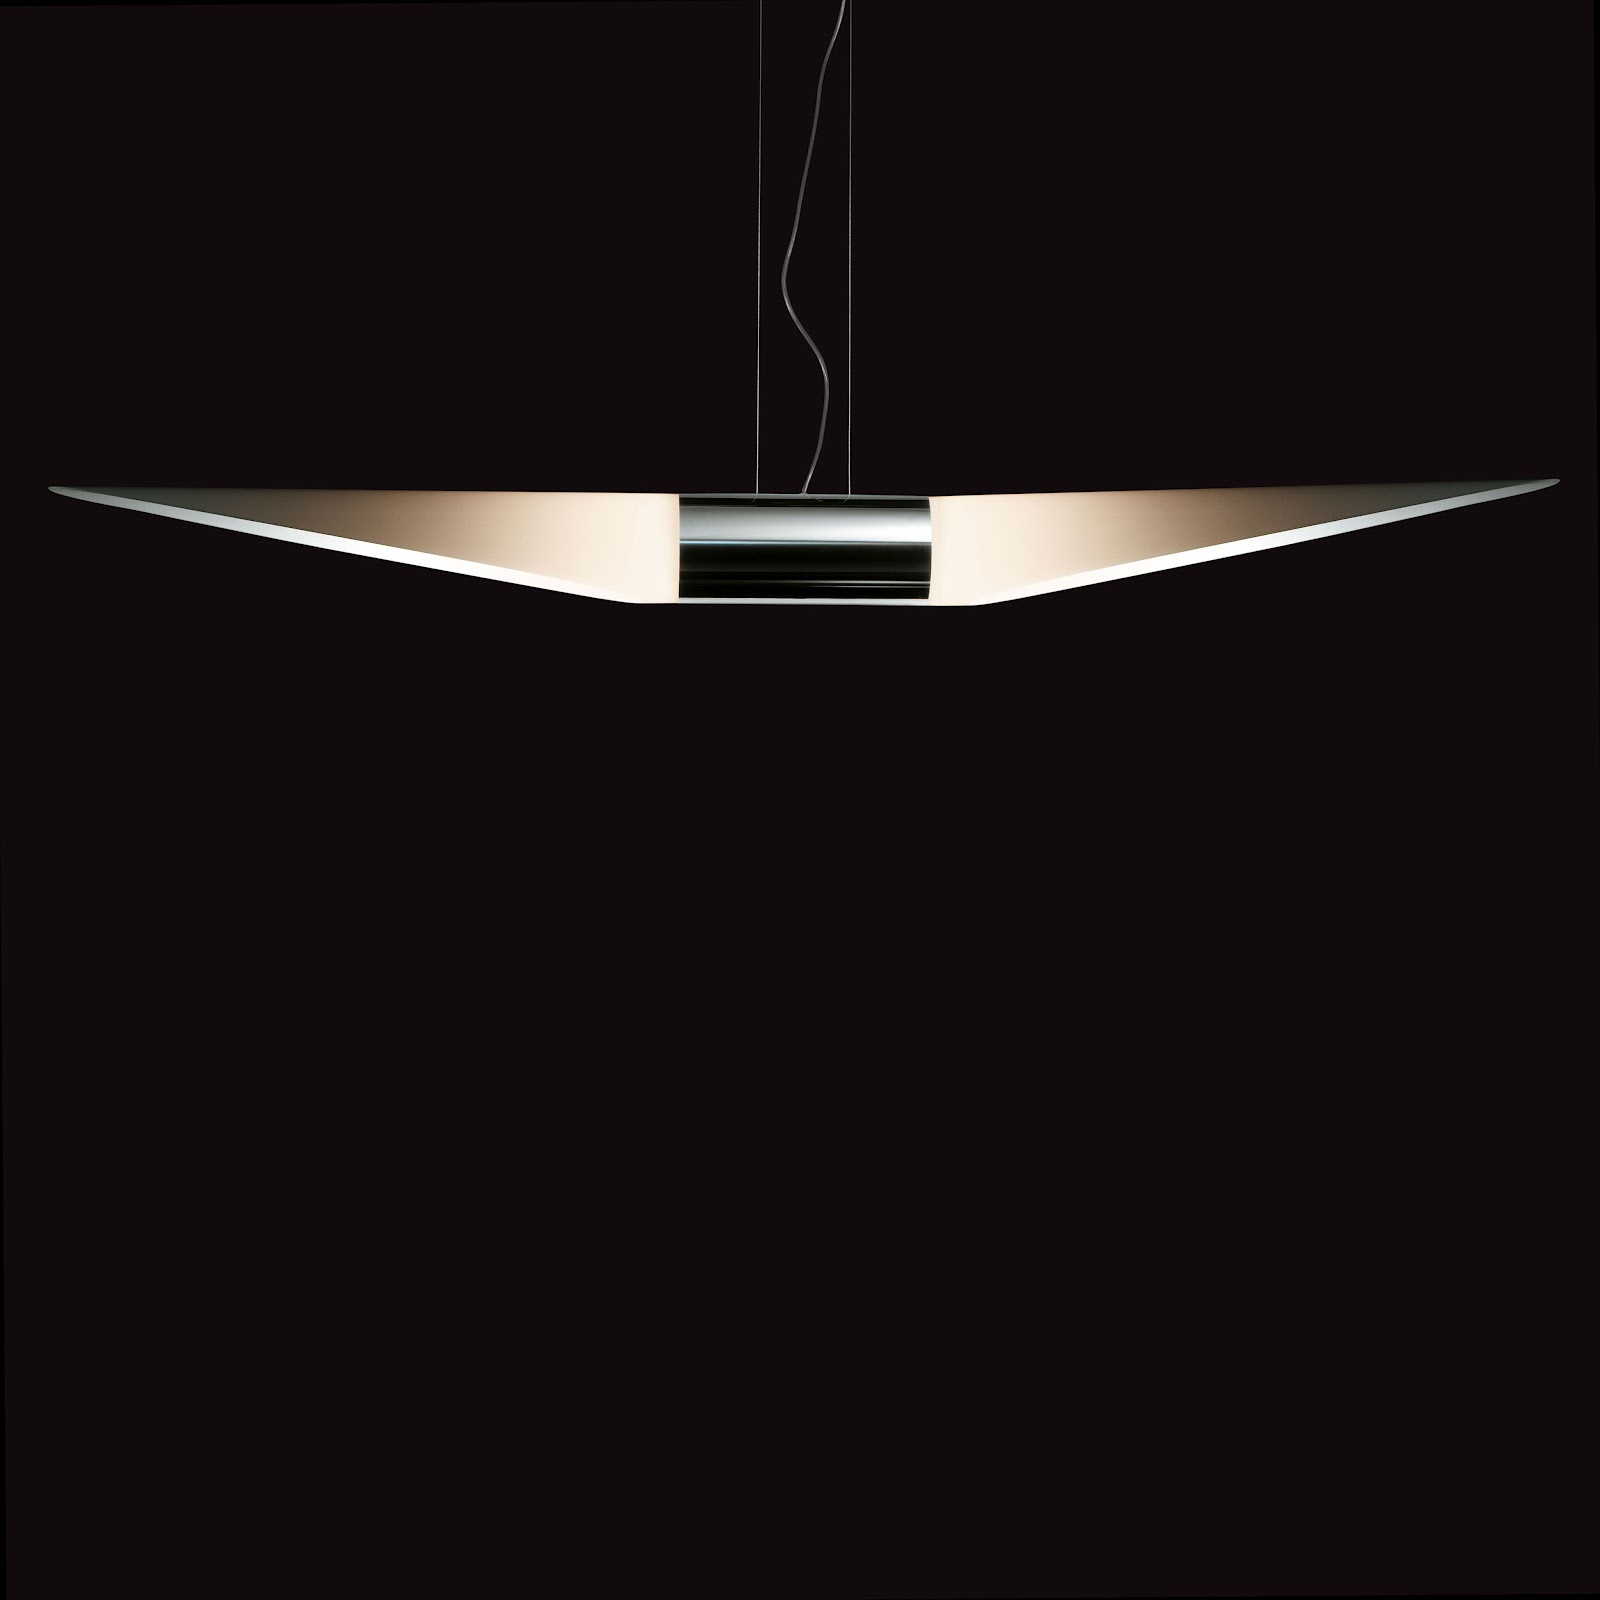 modern interior design Large Pendant Light Fixture for above